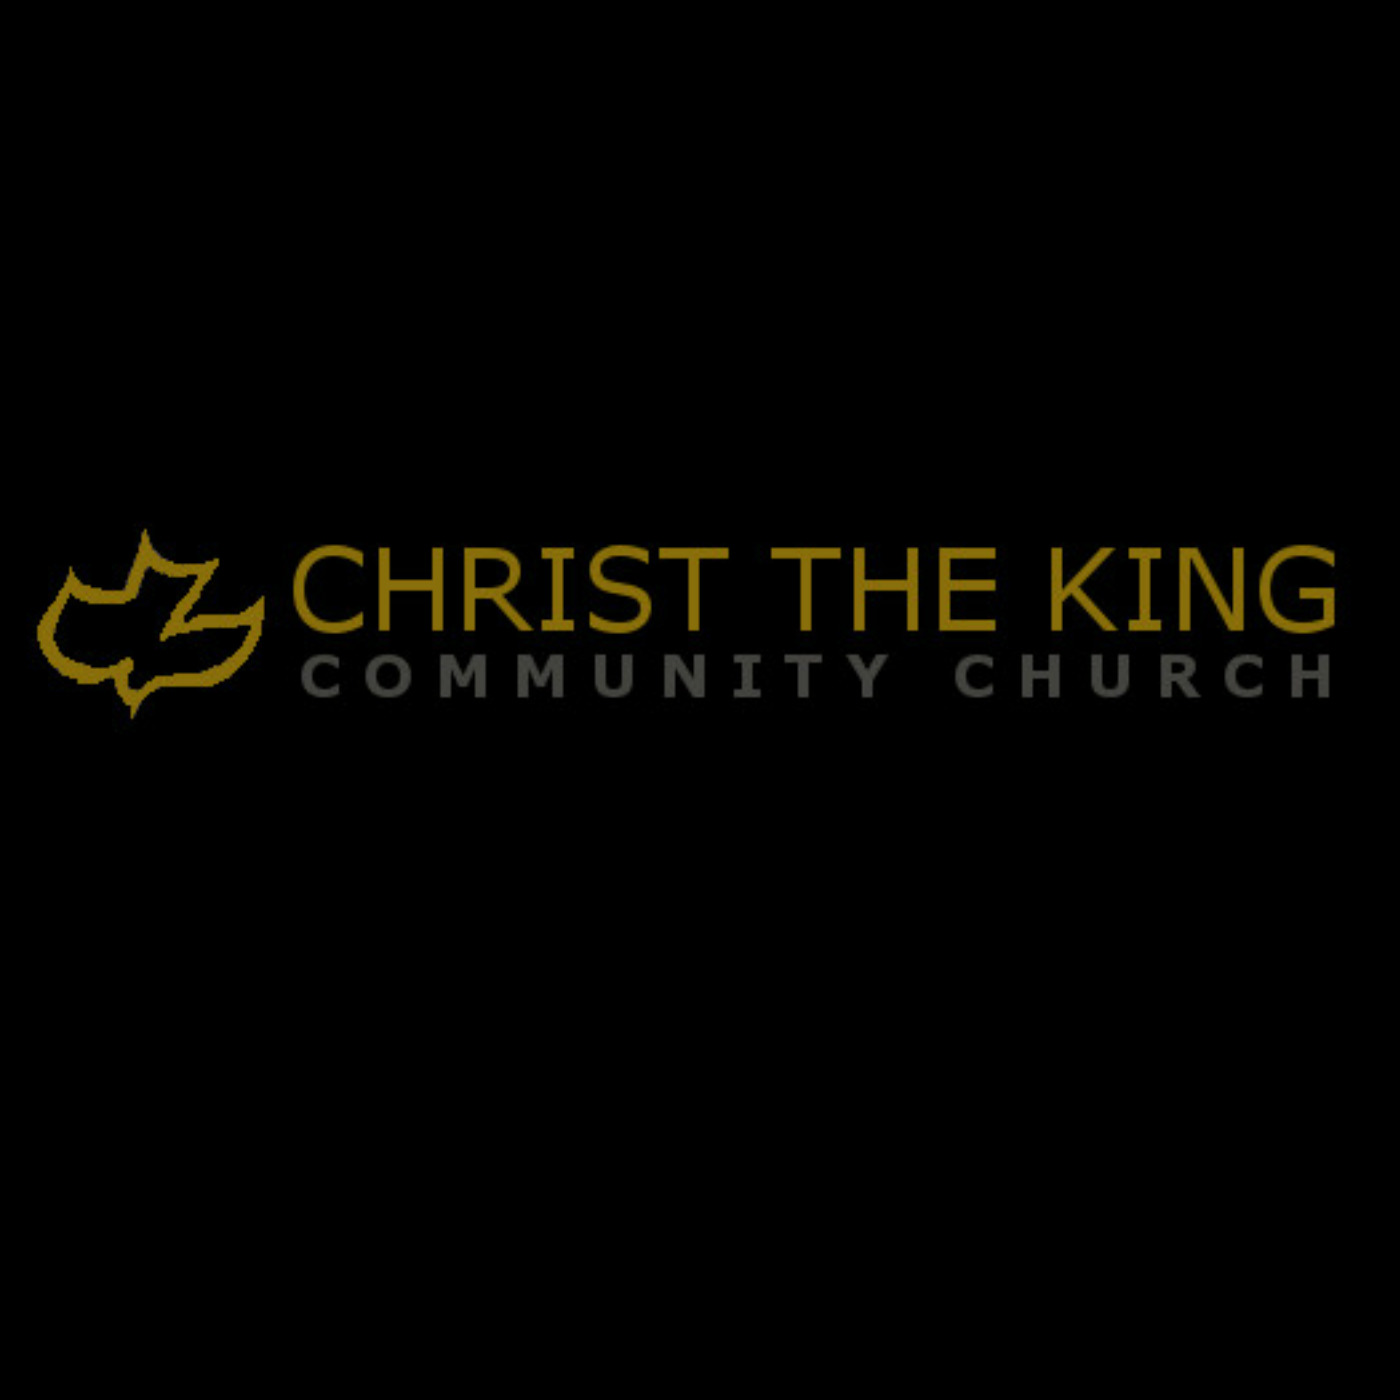 Christ The King Community Church